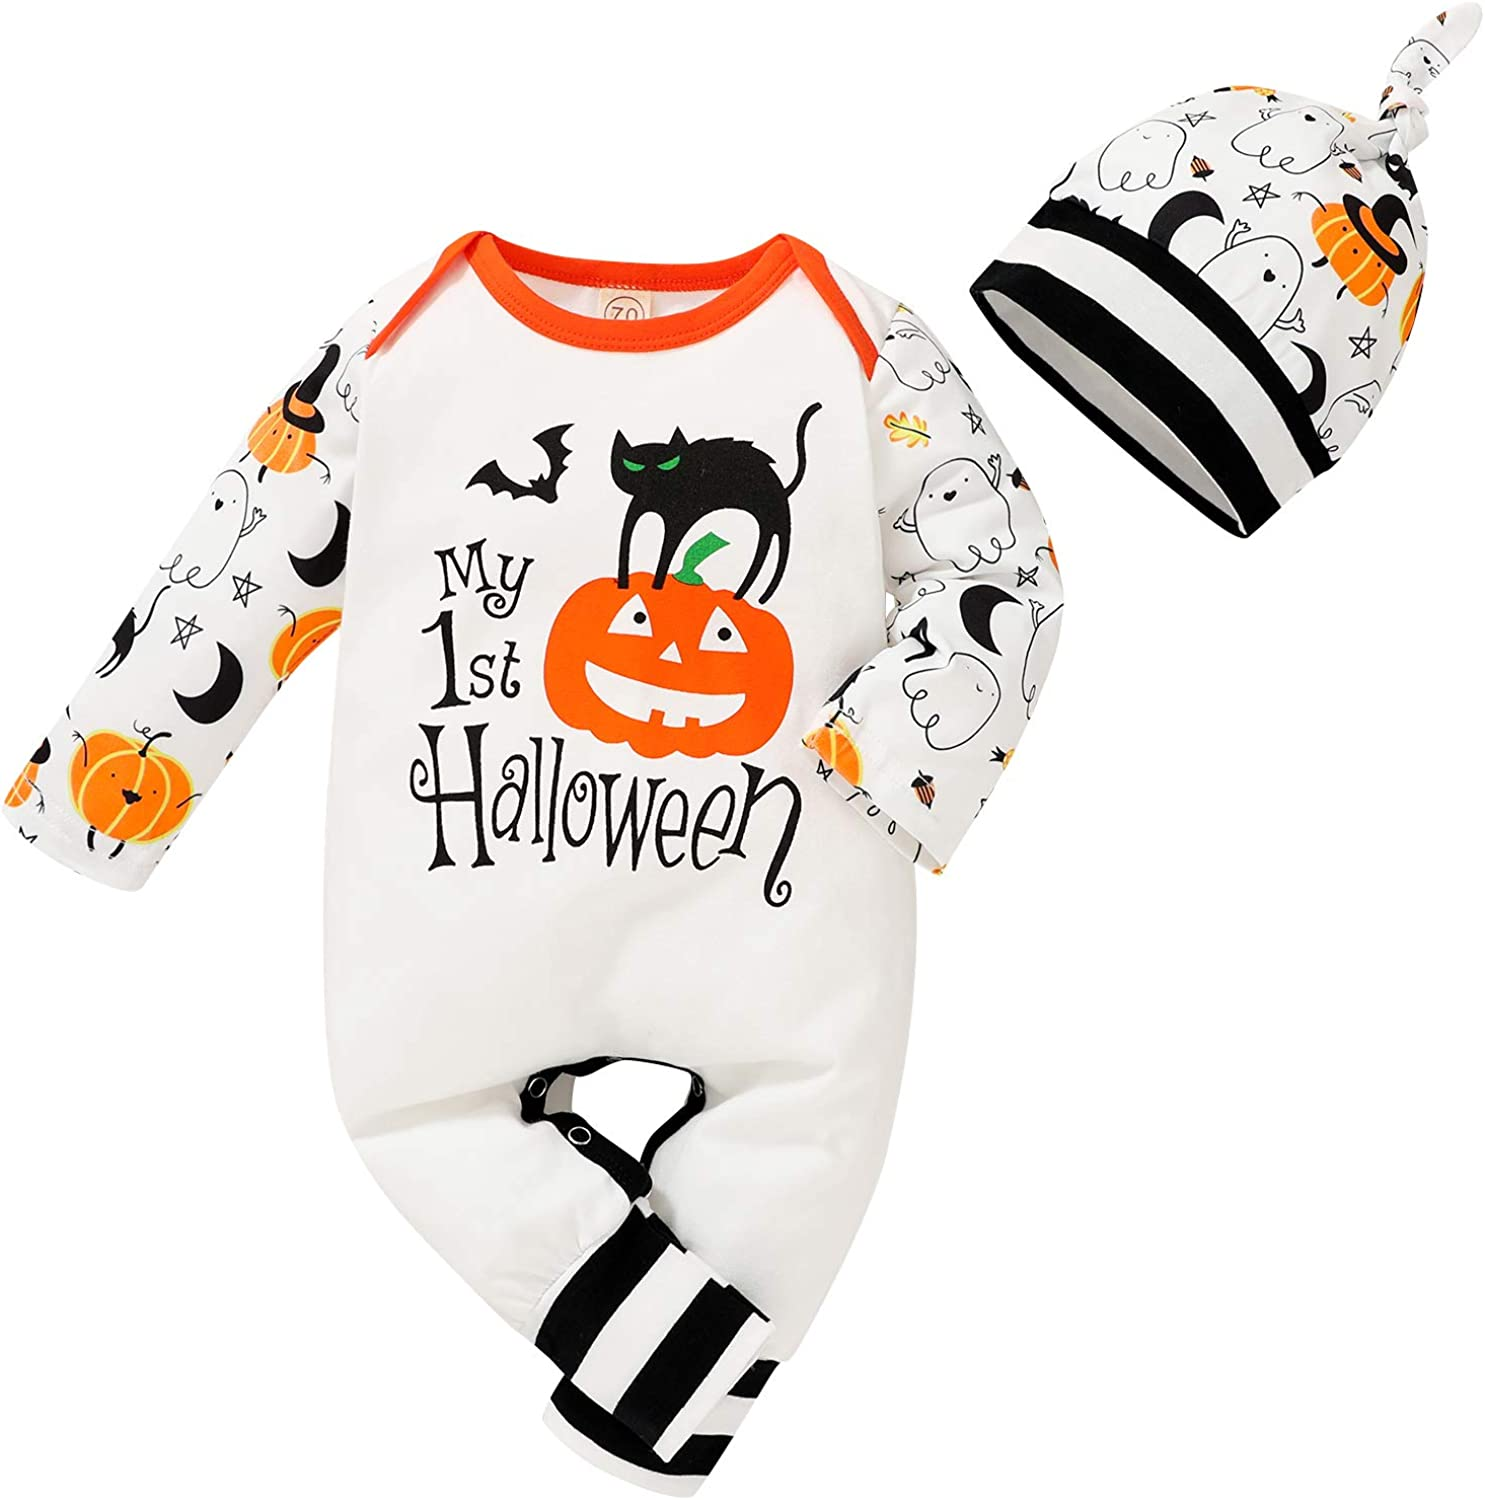 Infant Baby Girls Boys Halloween Outfits My First Halloween Pumpkin Bodysuit with Hat Clothes Set